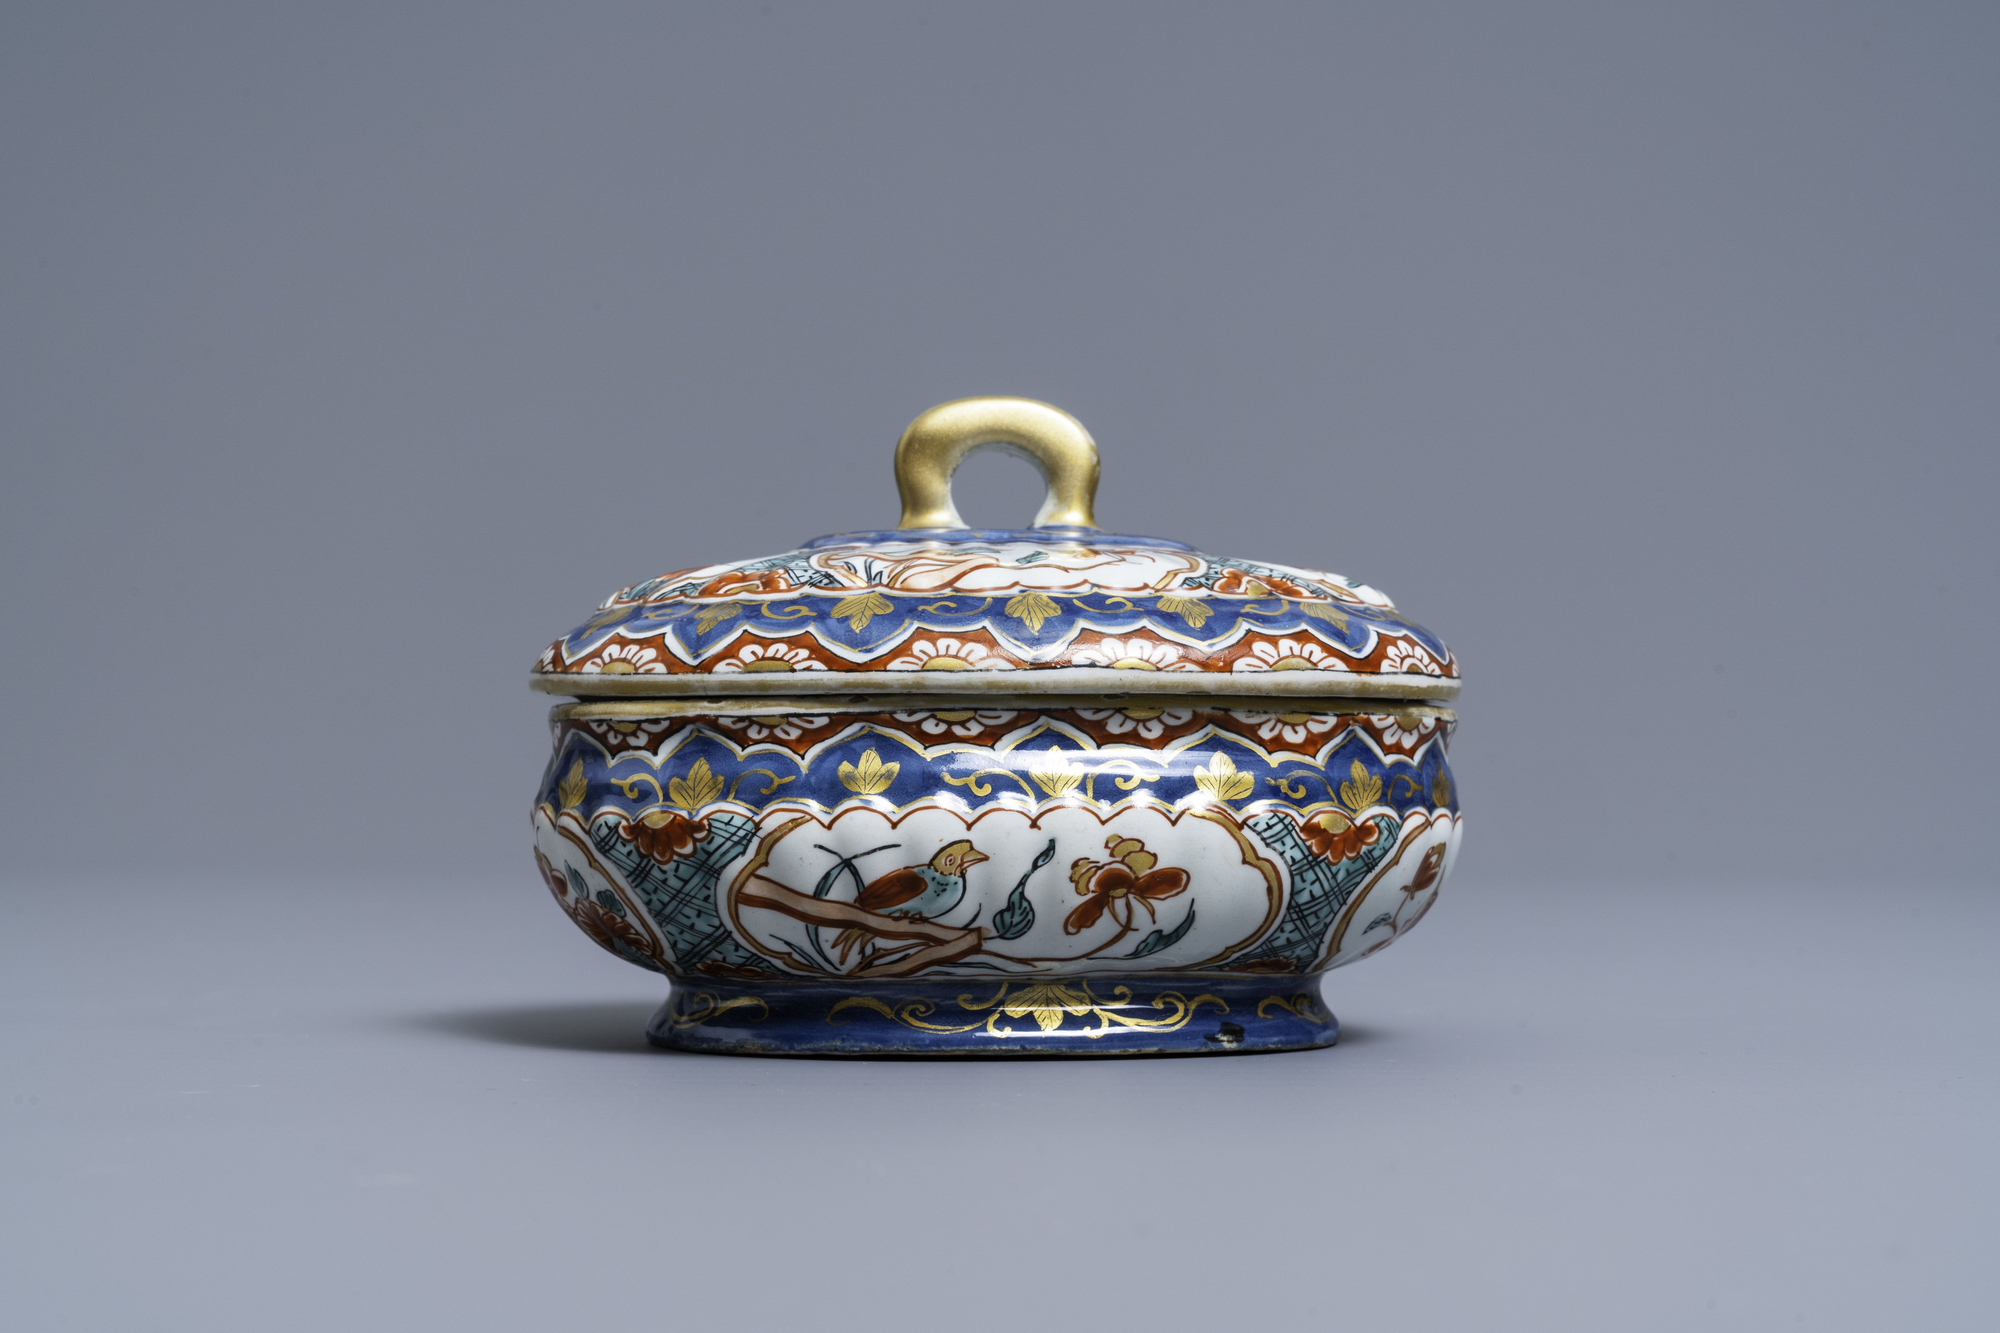 A polychrome and gilded Dutch Delft spice box and cover, early 18th C. - Image 4 of 7